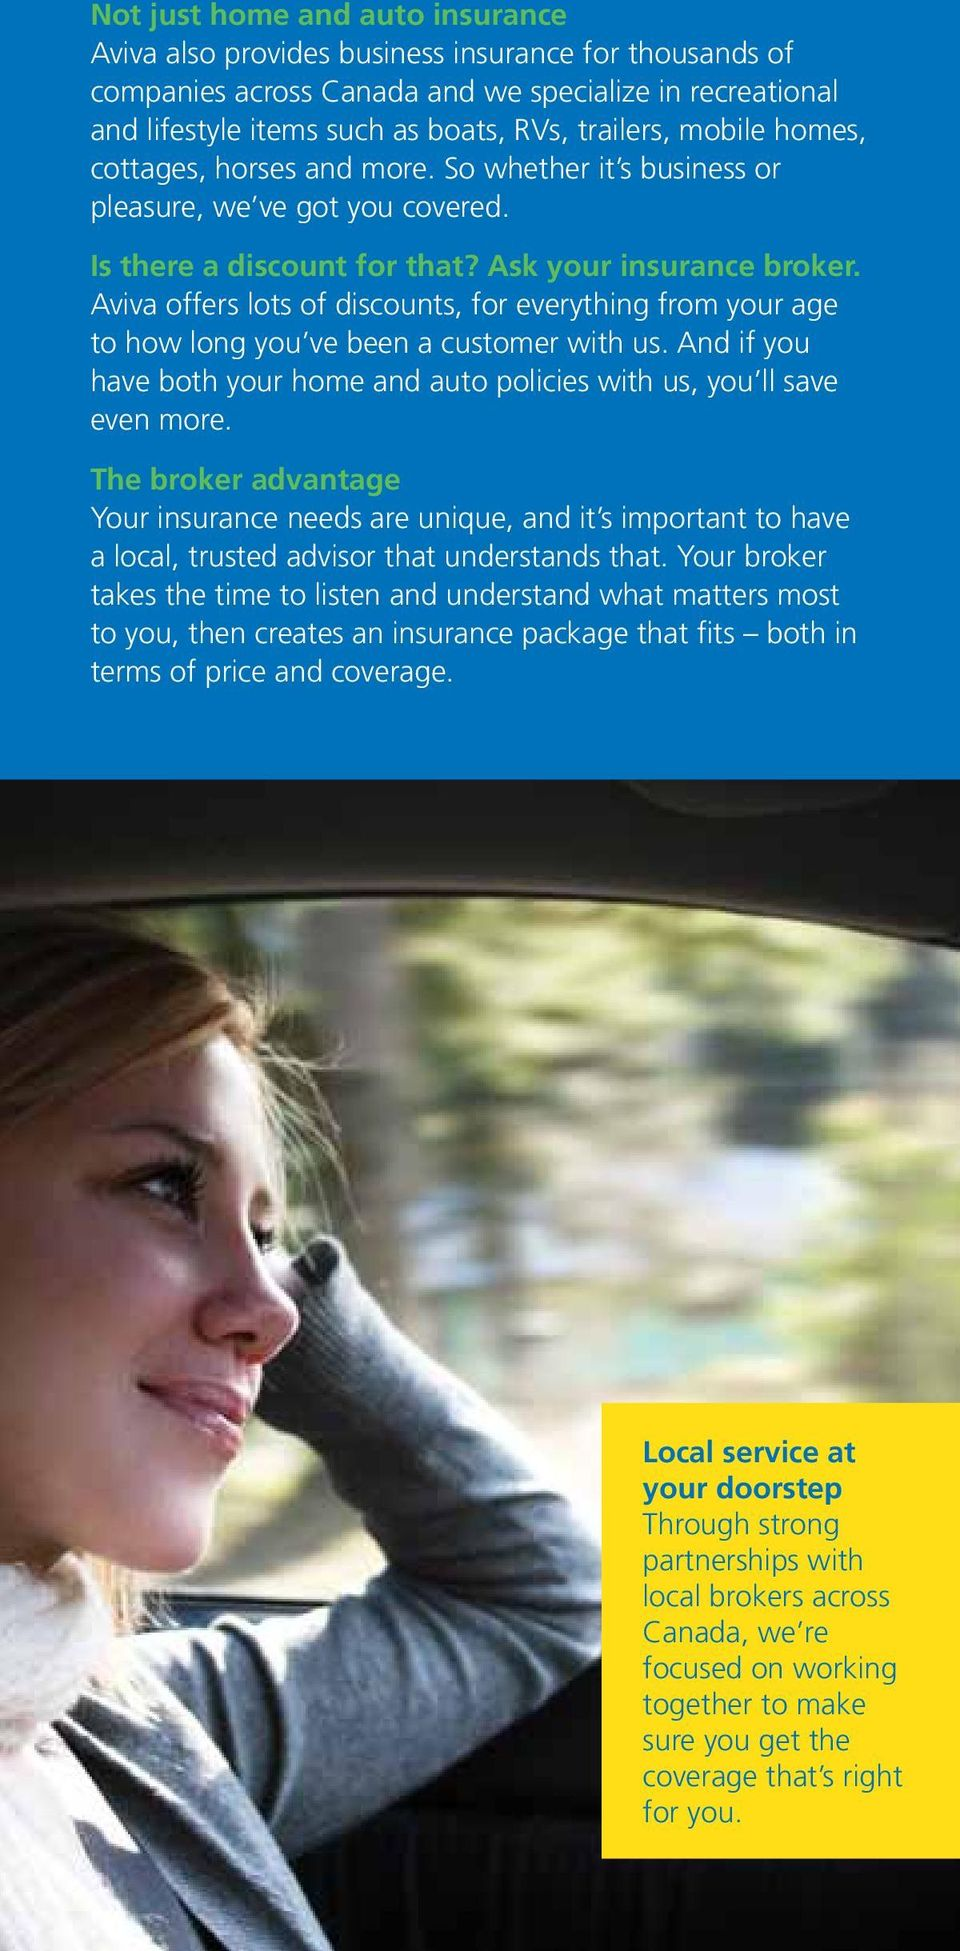 Aviva offers lots of discounts, for everything from your age to how long you ve been a customer with us. And if you have both your home and auto policies with us, you ll save even more.